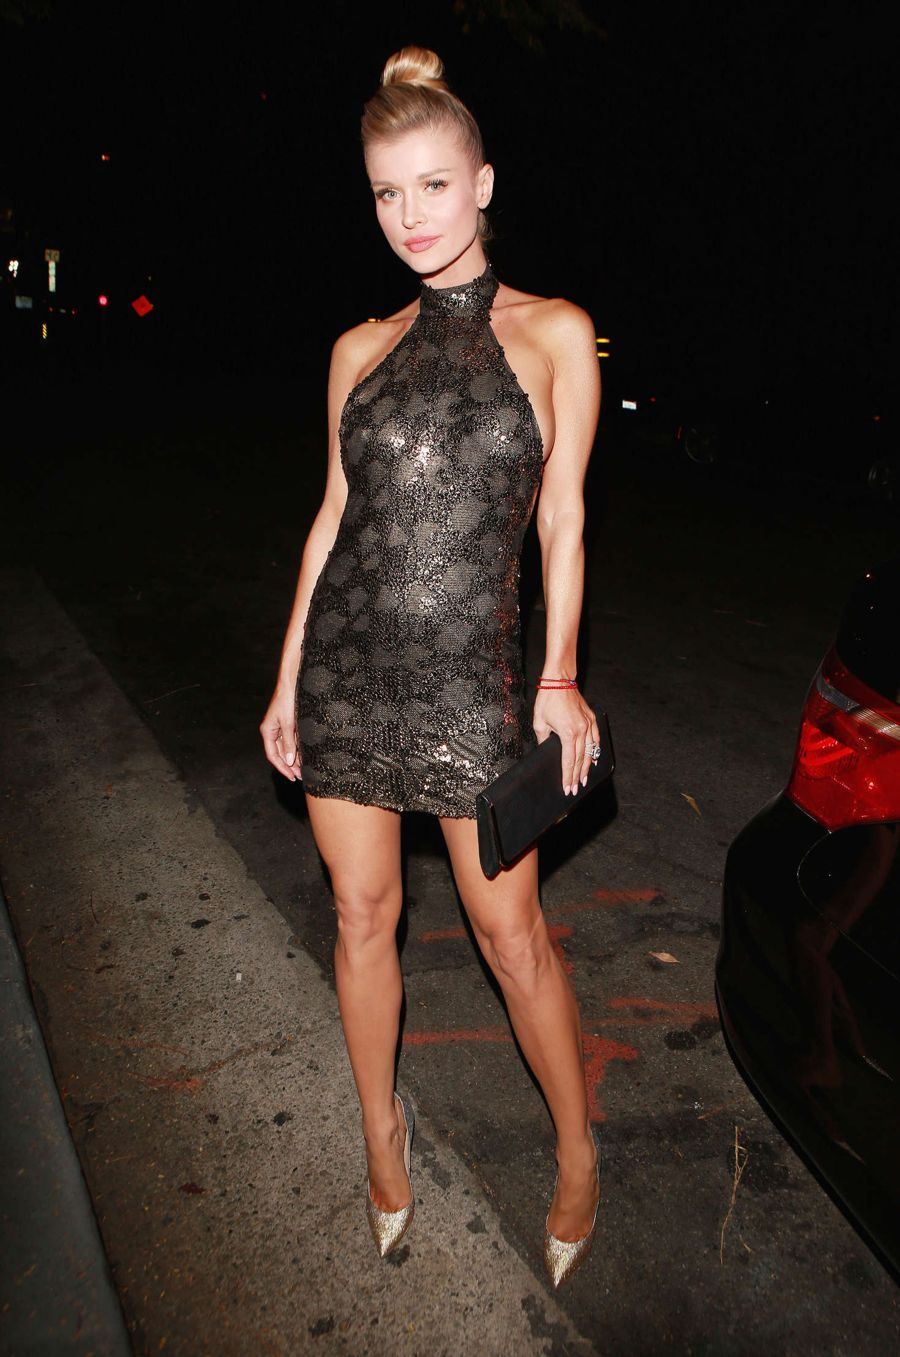 Joanna Krupa - Head to the CAA Party in Hollywood